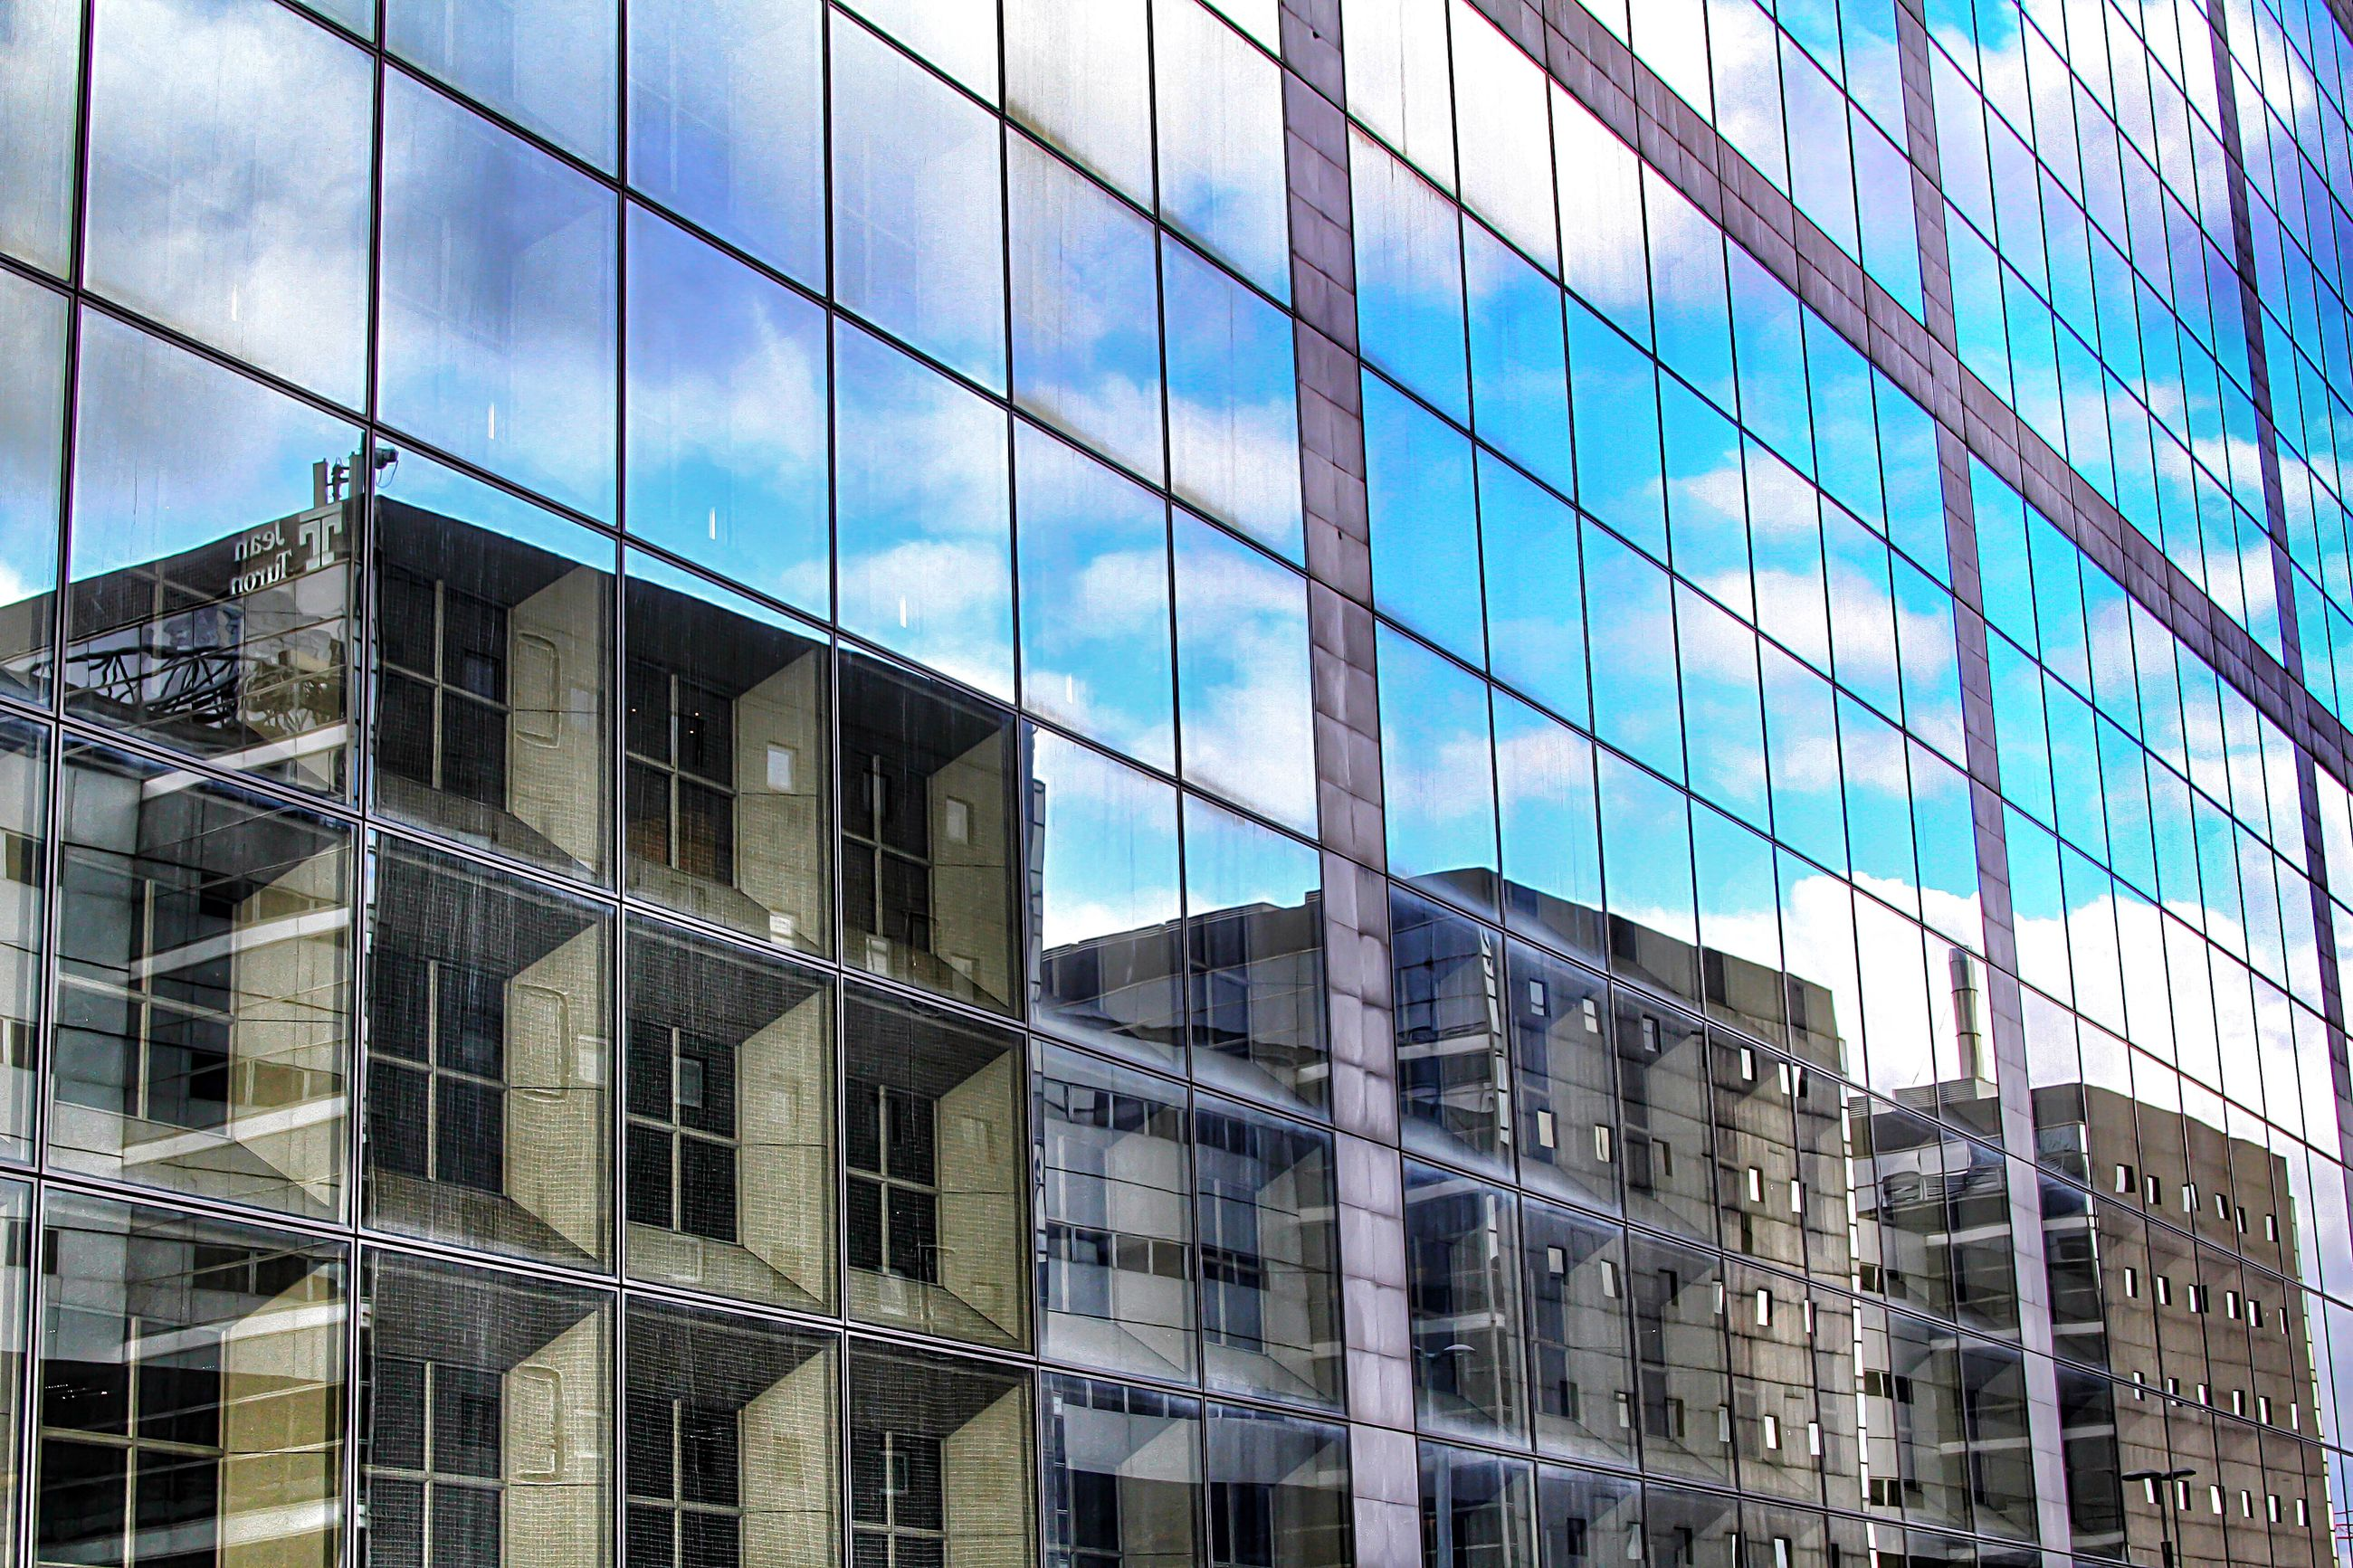 architecture, building exterior, built structure, modern, glass - material, office building, low angle view, city, reflection, window, building, skyscraper, blue, glass, sky, tall - high, day, tower, city life, outdoors